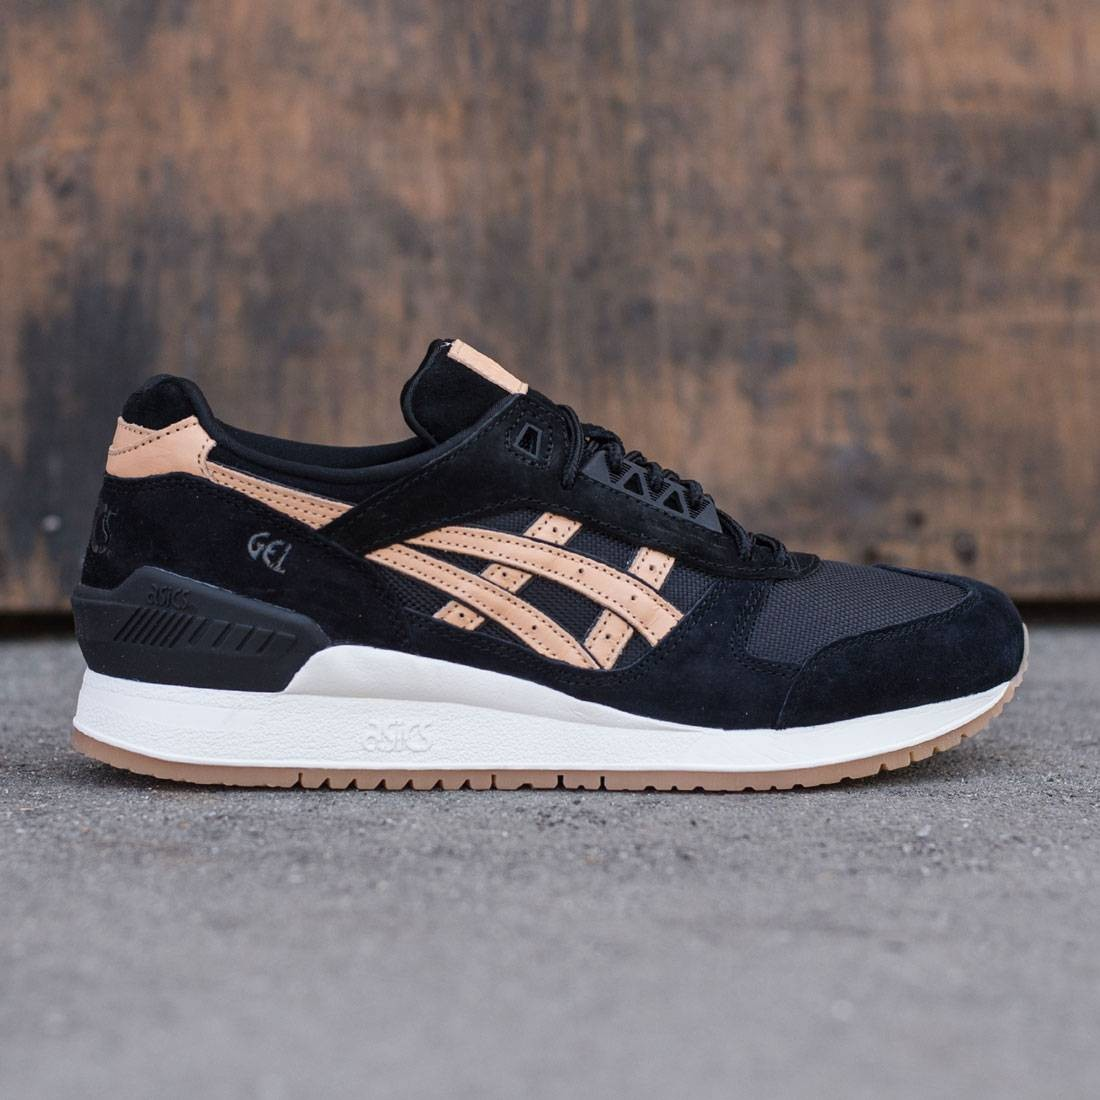 c27d5e144f63 Asics Tiger Men Gel-Respector - Veg Tan Pack black sand